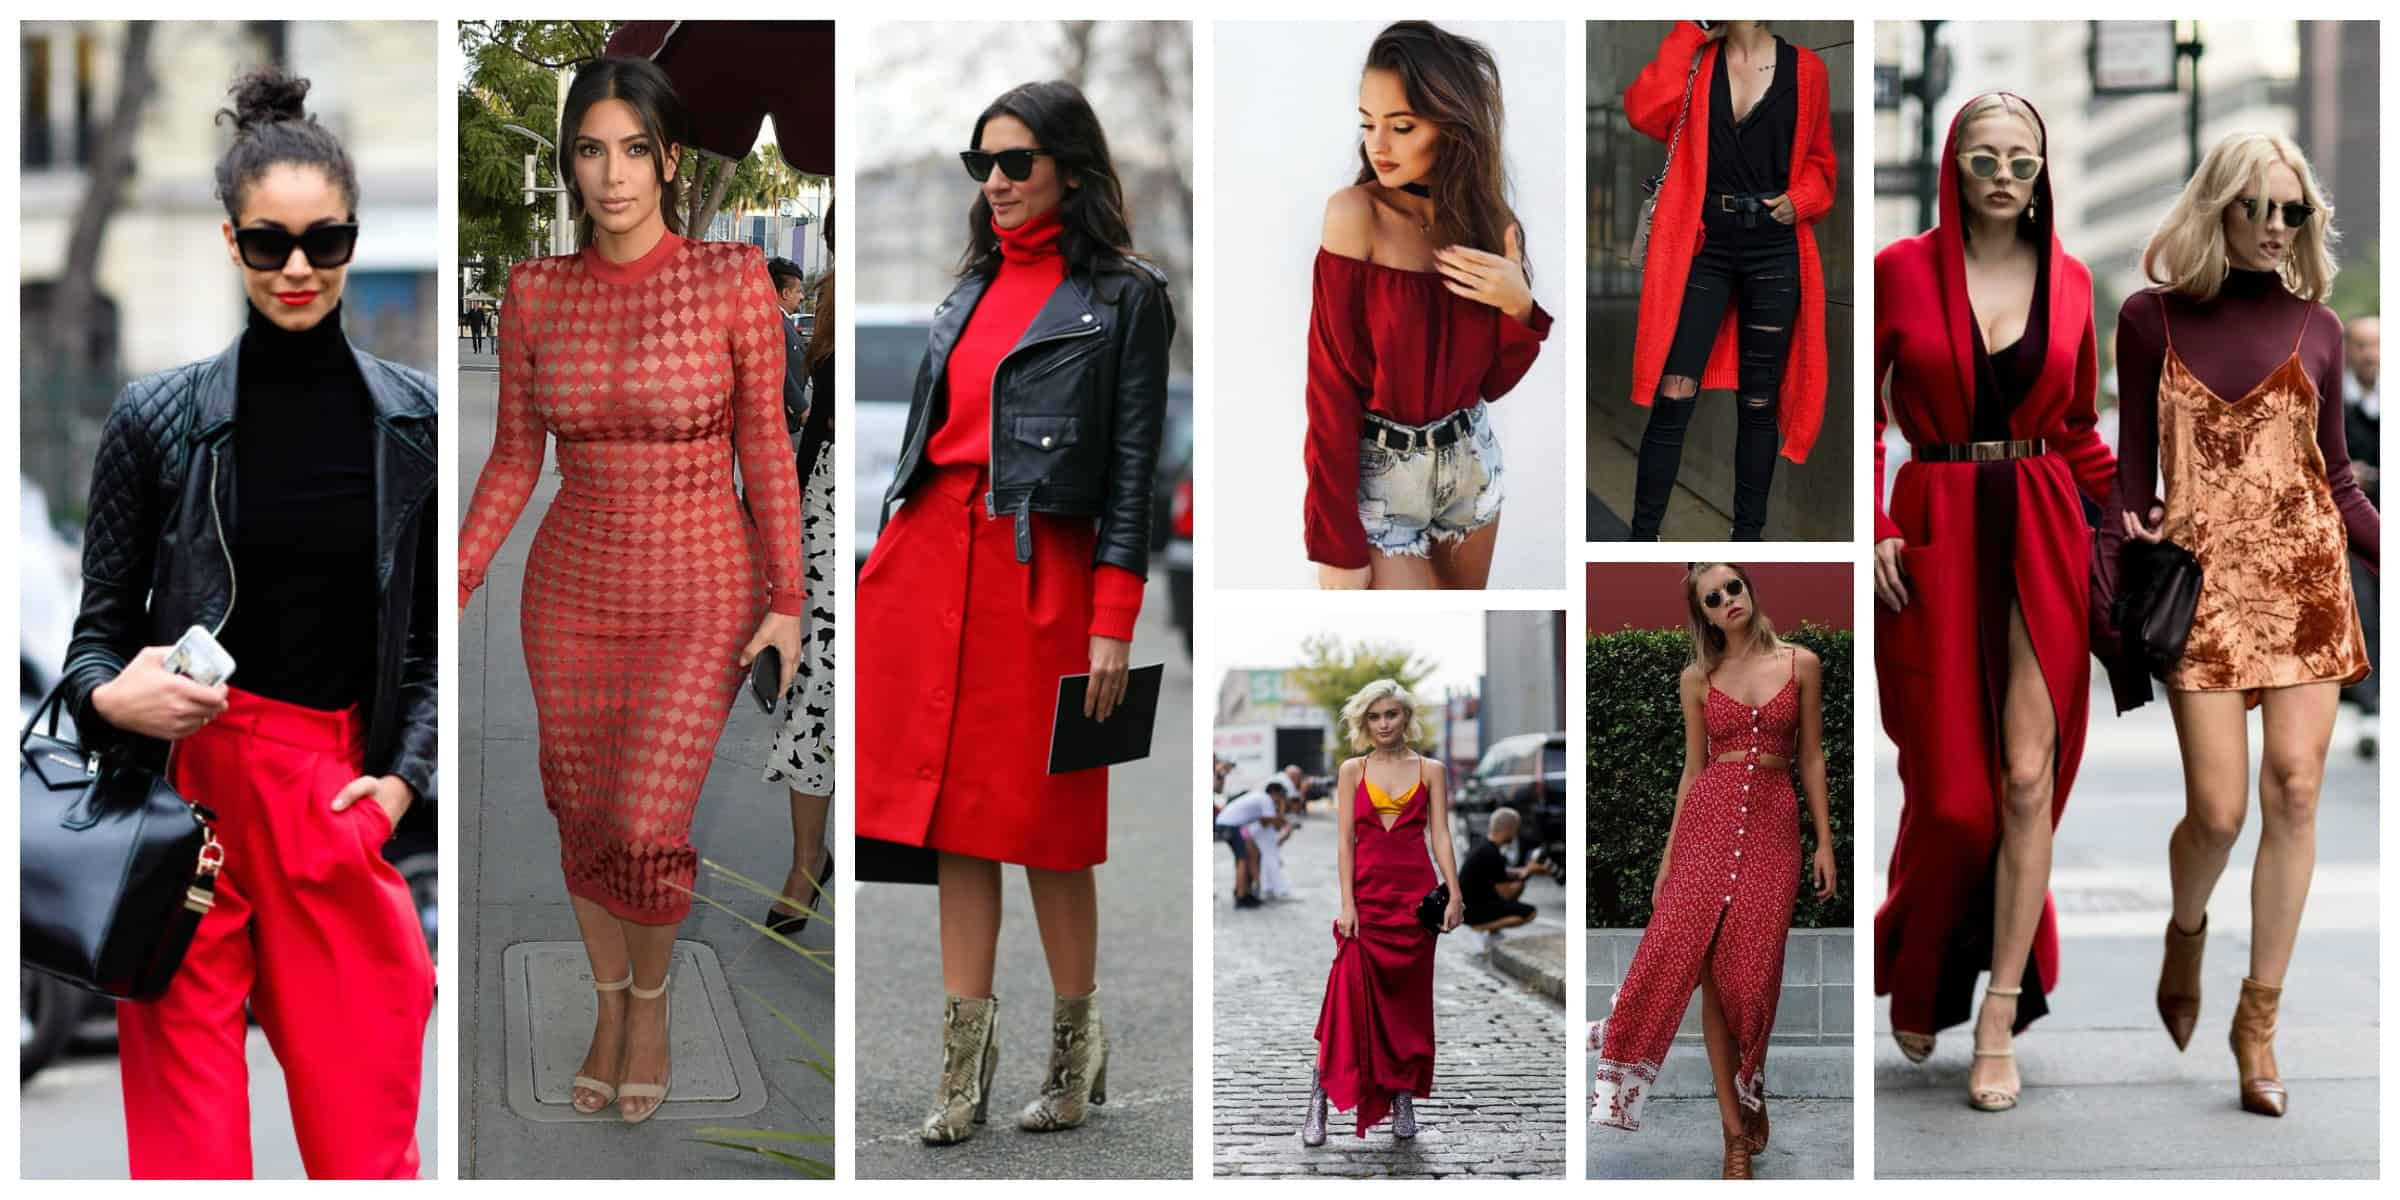 2017 Fashion Color Trends Color Trends 2017 Fashion Spring